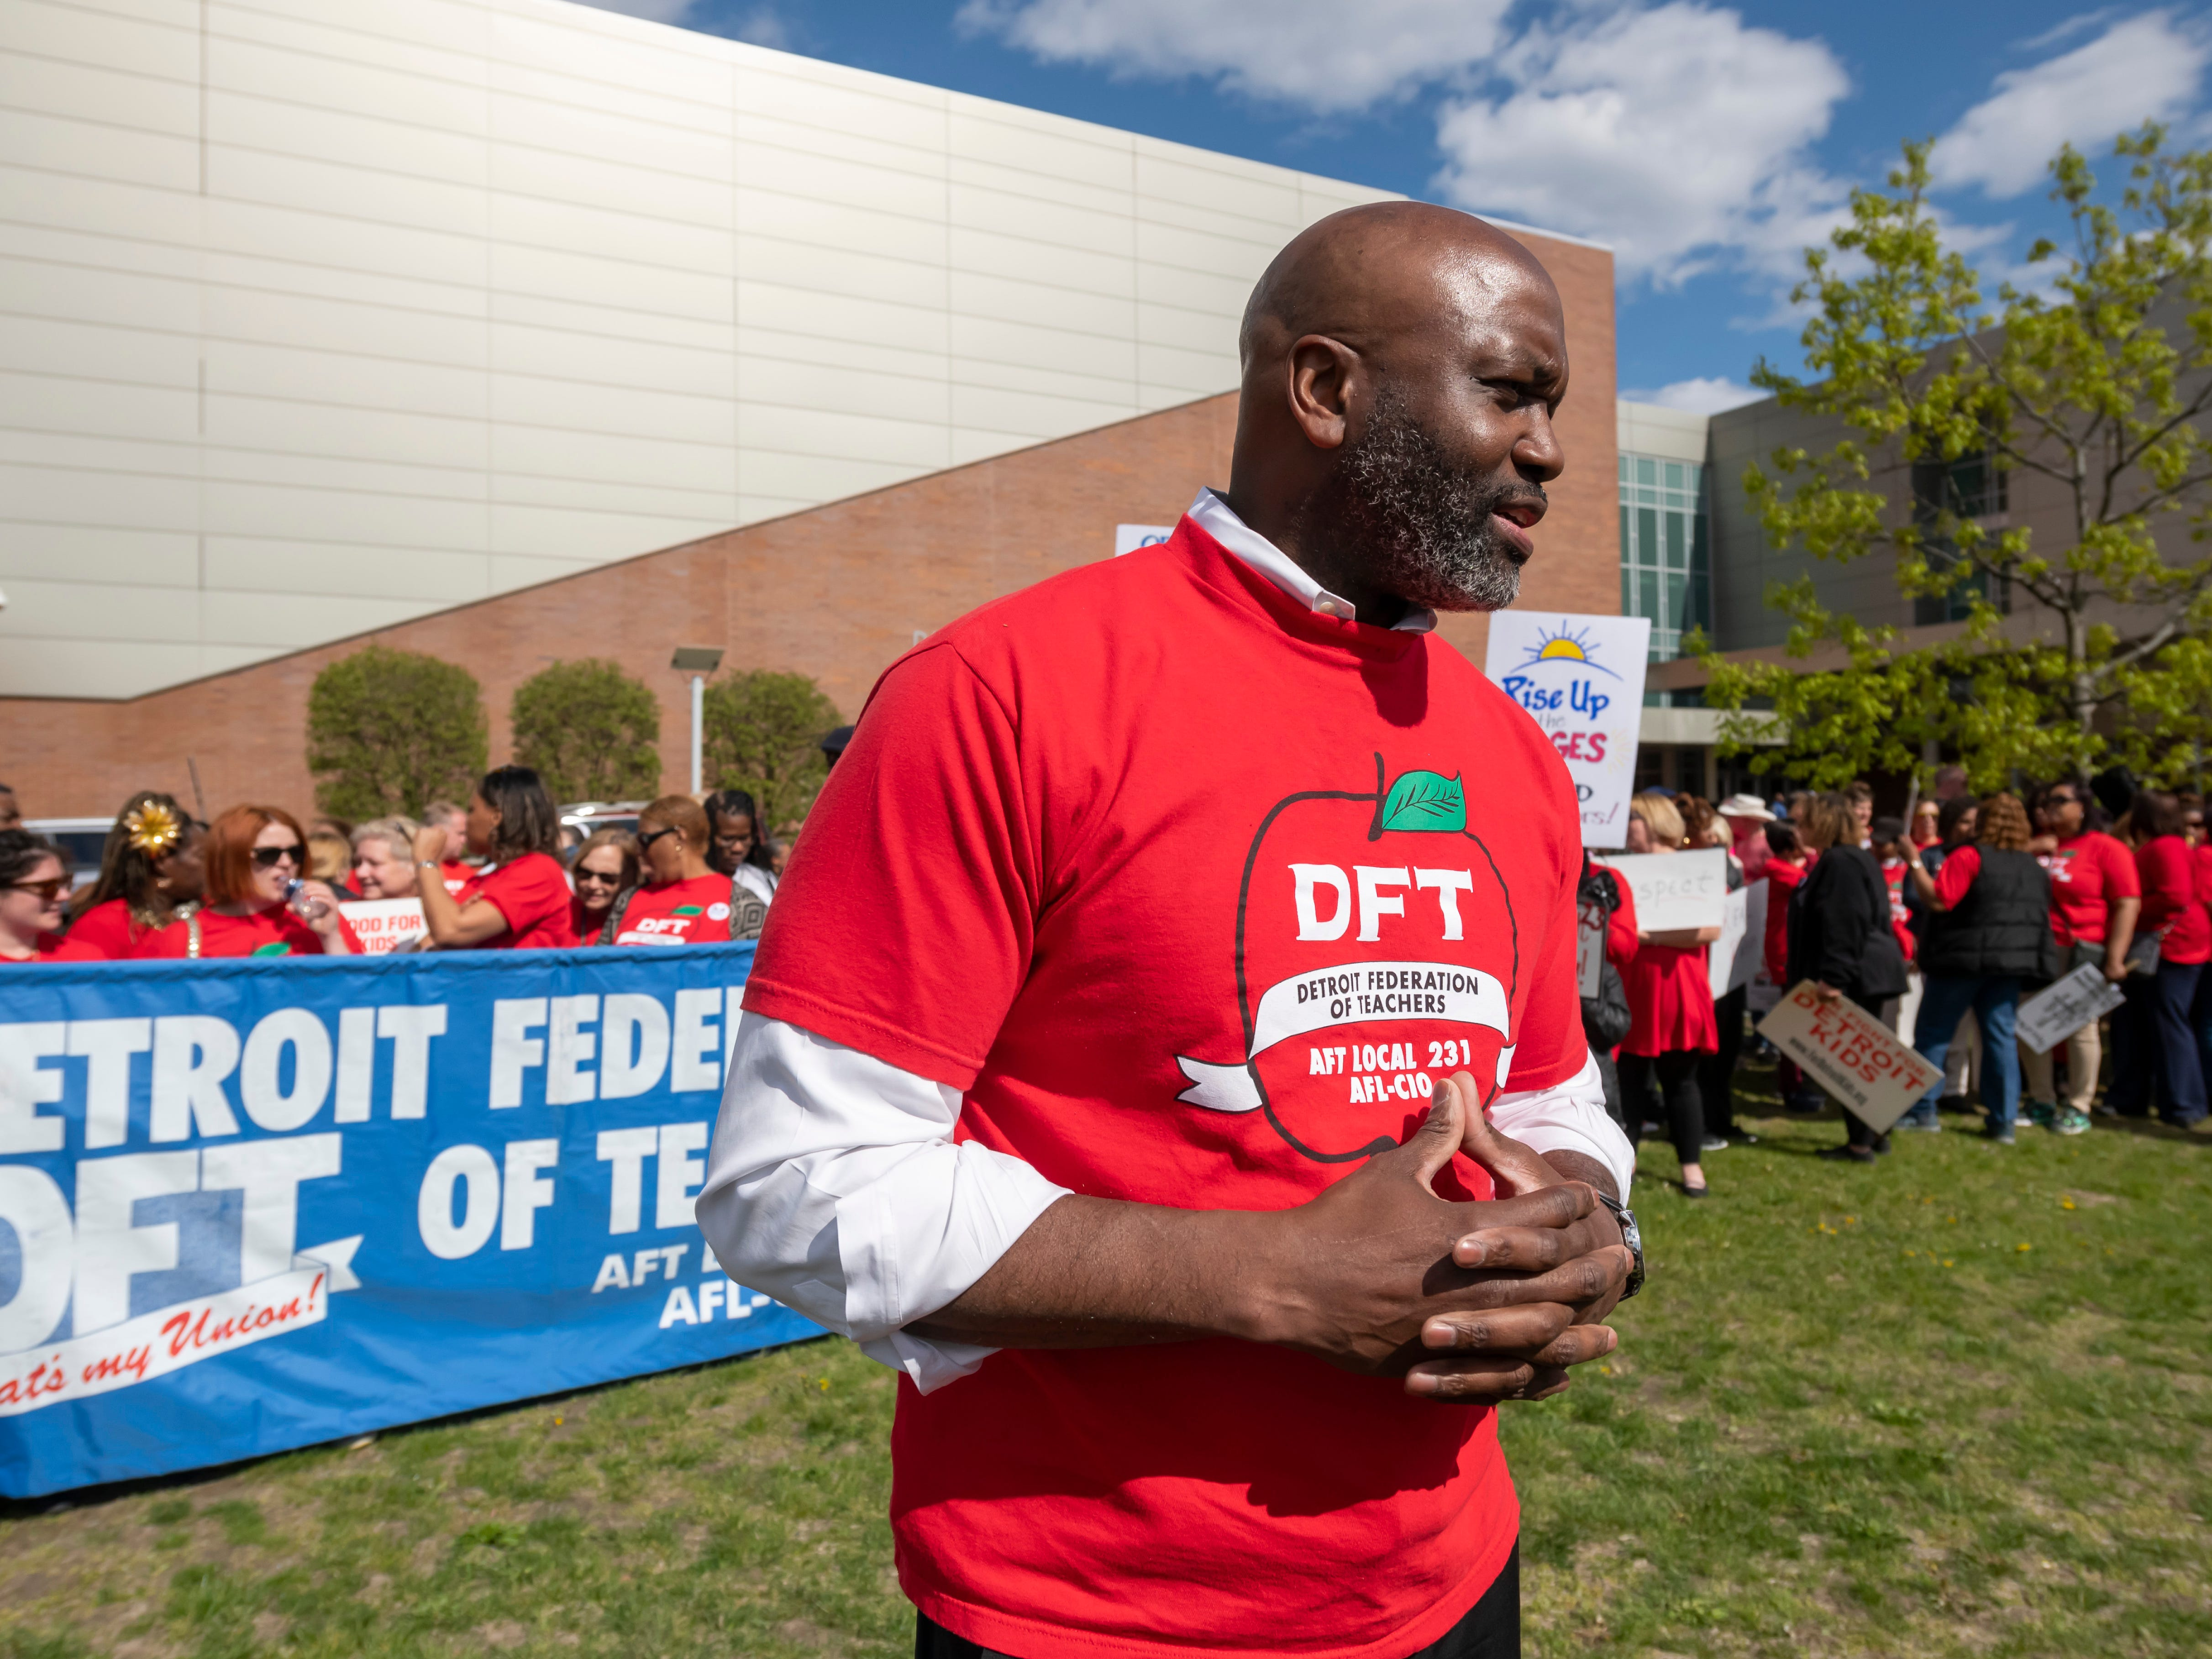 Terrence Martin, president of the Detroit Federation of Teachers, speaks to reporters during a protest before a school board meeting at Renaissance High school, in Detroit, May 14, 2019. The teachers are upset over a new calendar, teacher pay, building conditions and class sizes.   (David Guralnick / The Detroit News)